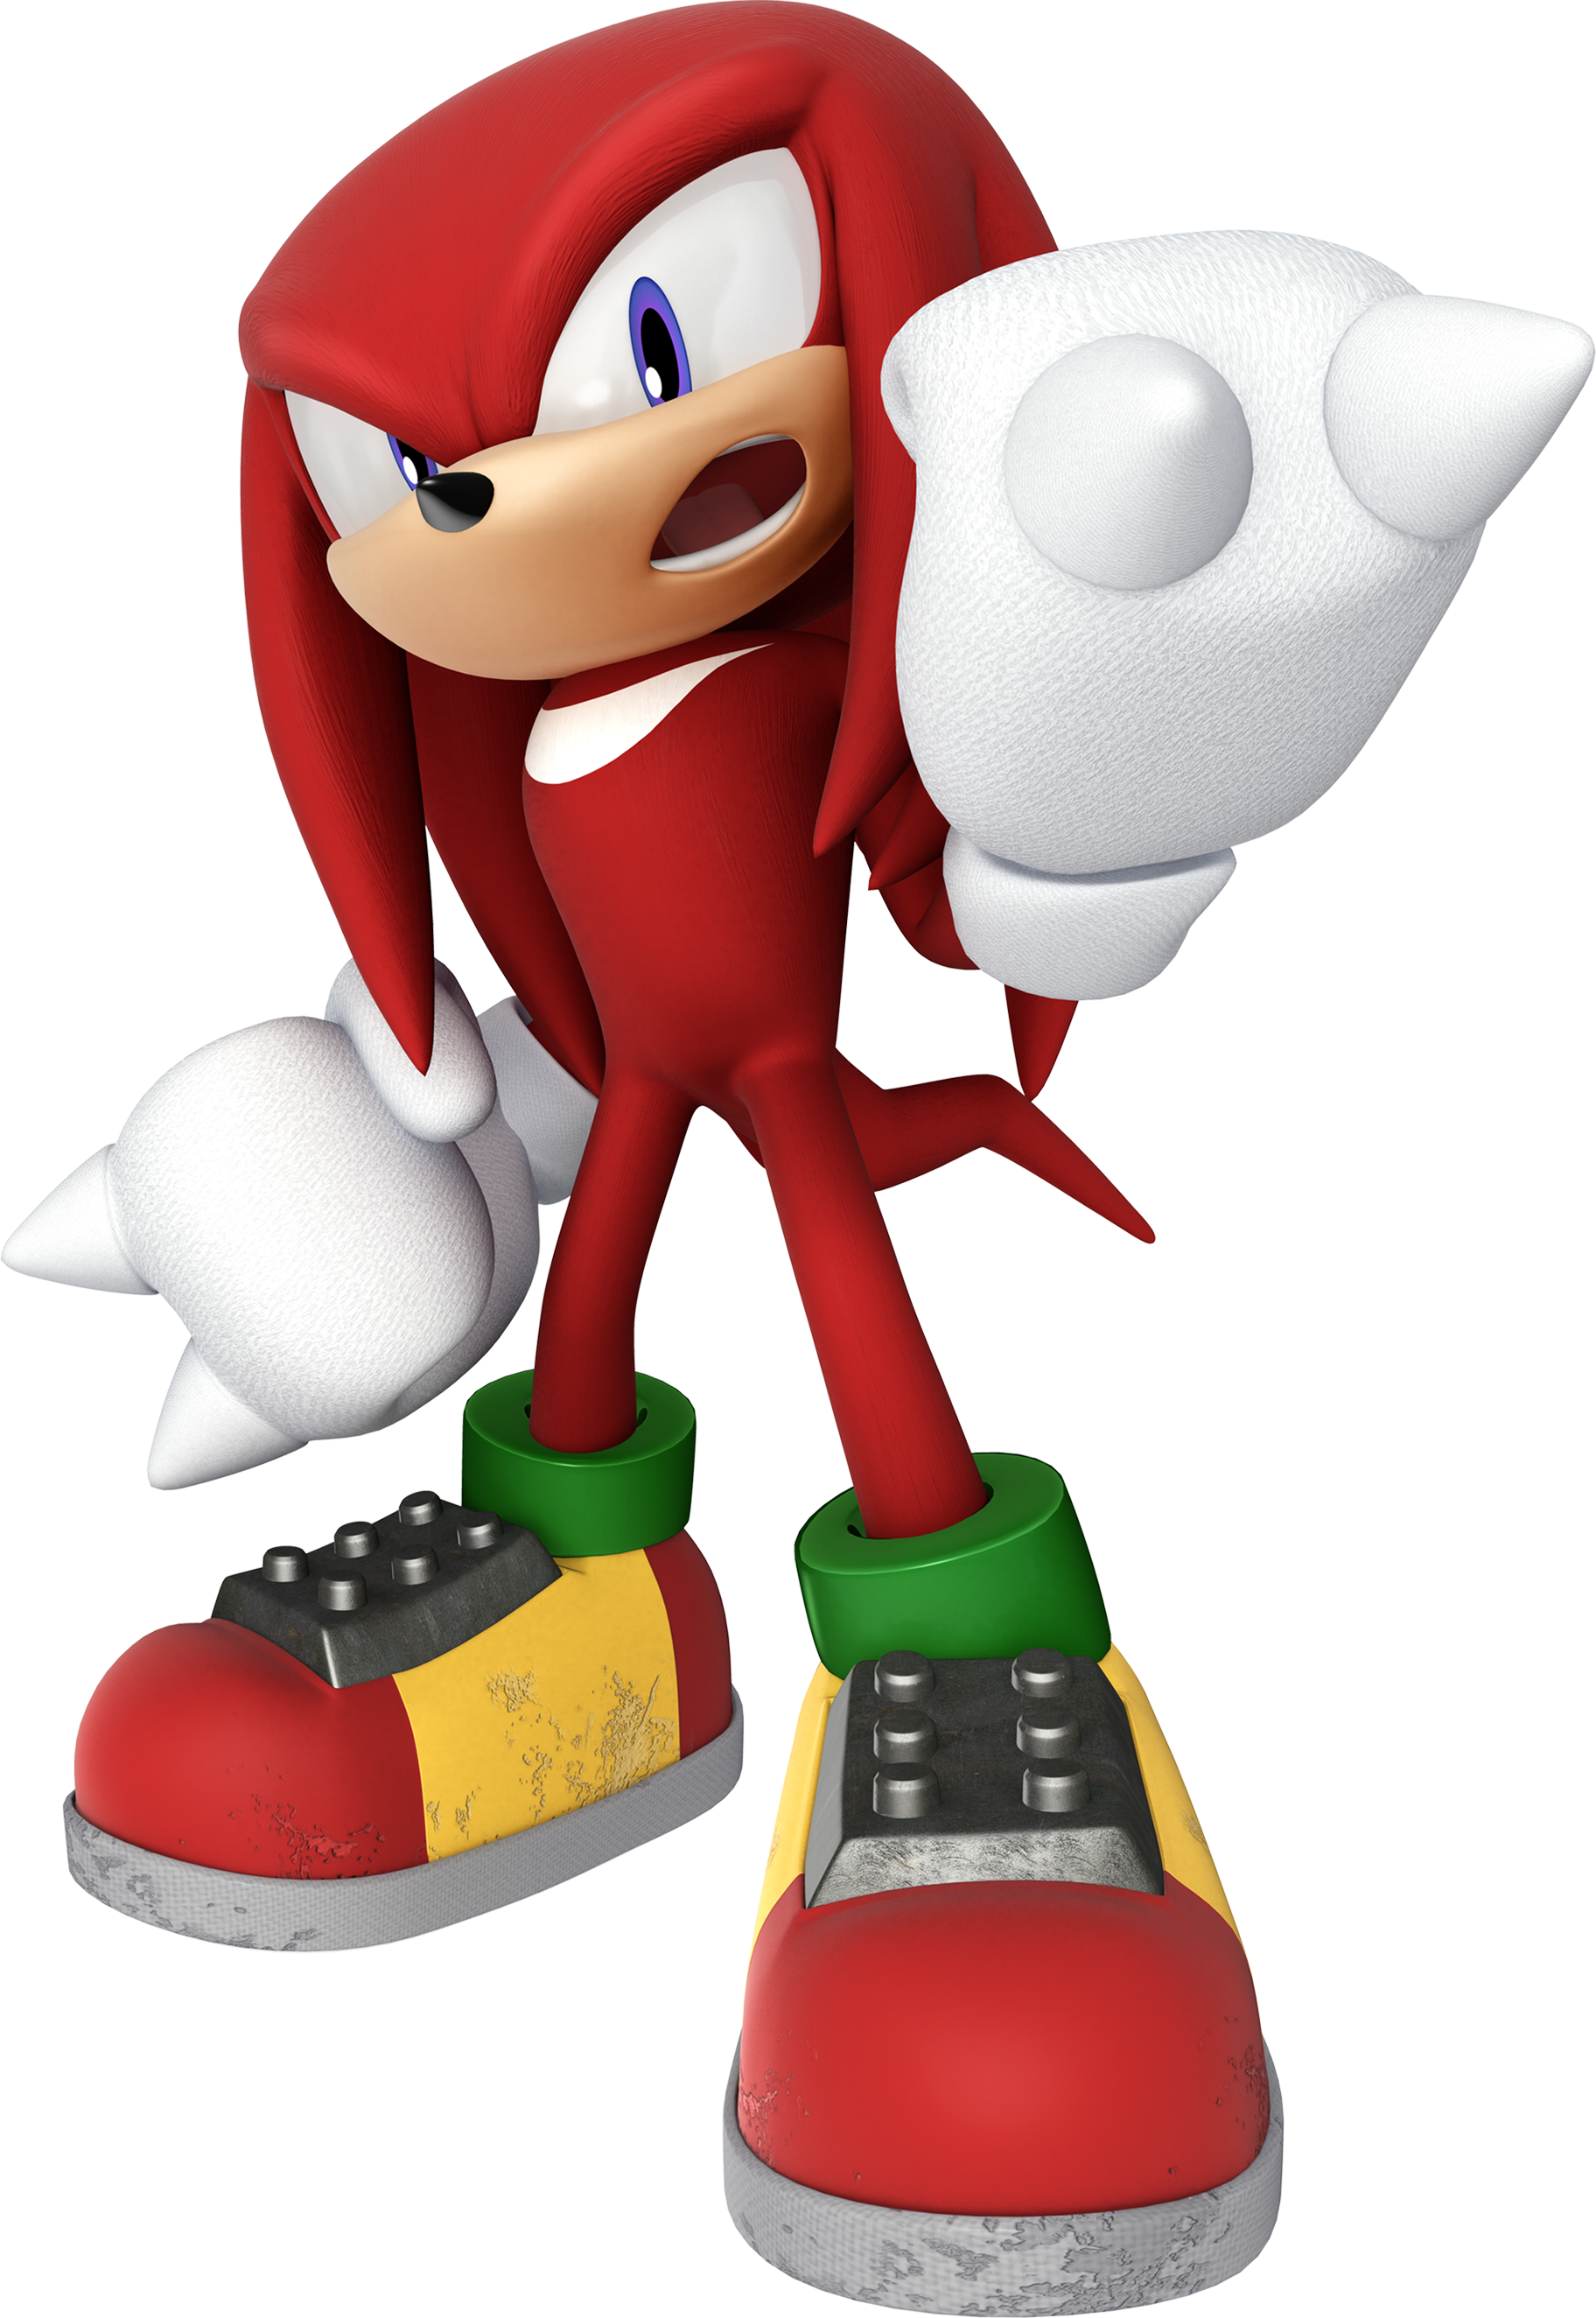 Image - ASR Knuckles.png - Sonic News Network, the Sonic Wiki